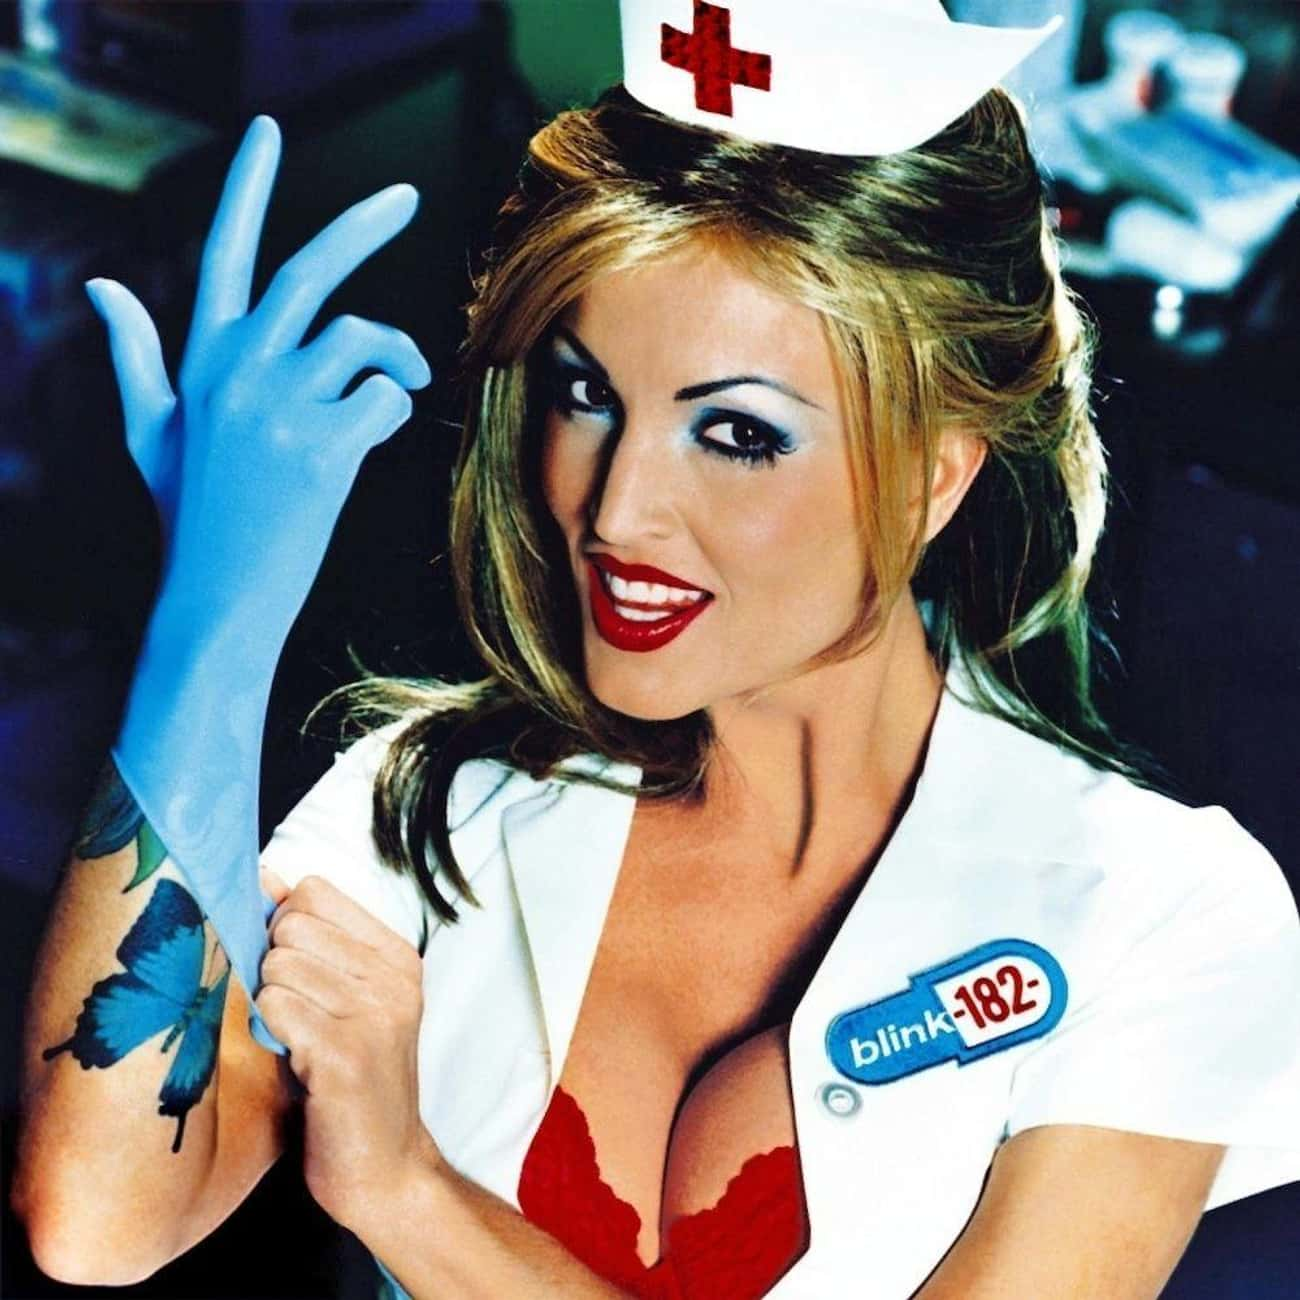 Enema of the State is listed (or ranked) 3 on the list The Best Blink-182 Albums of All-Time